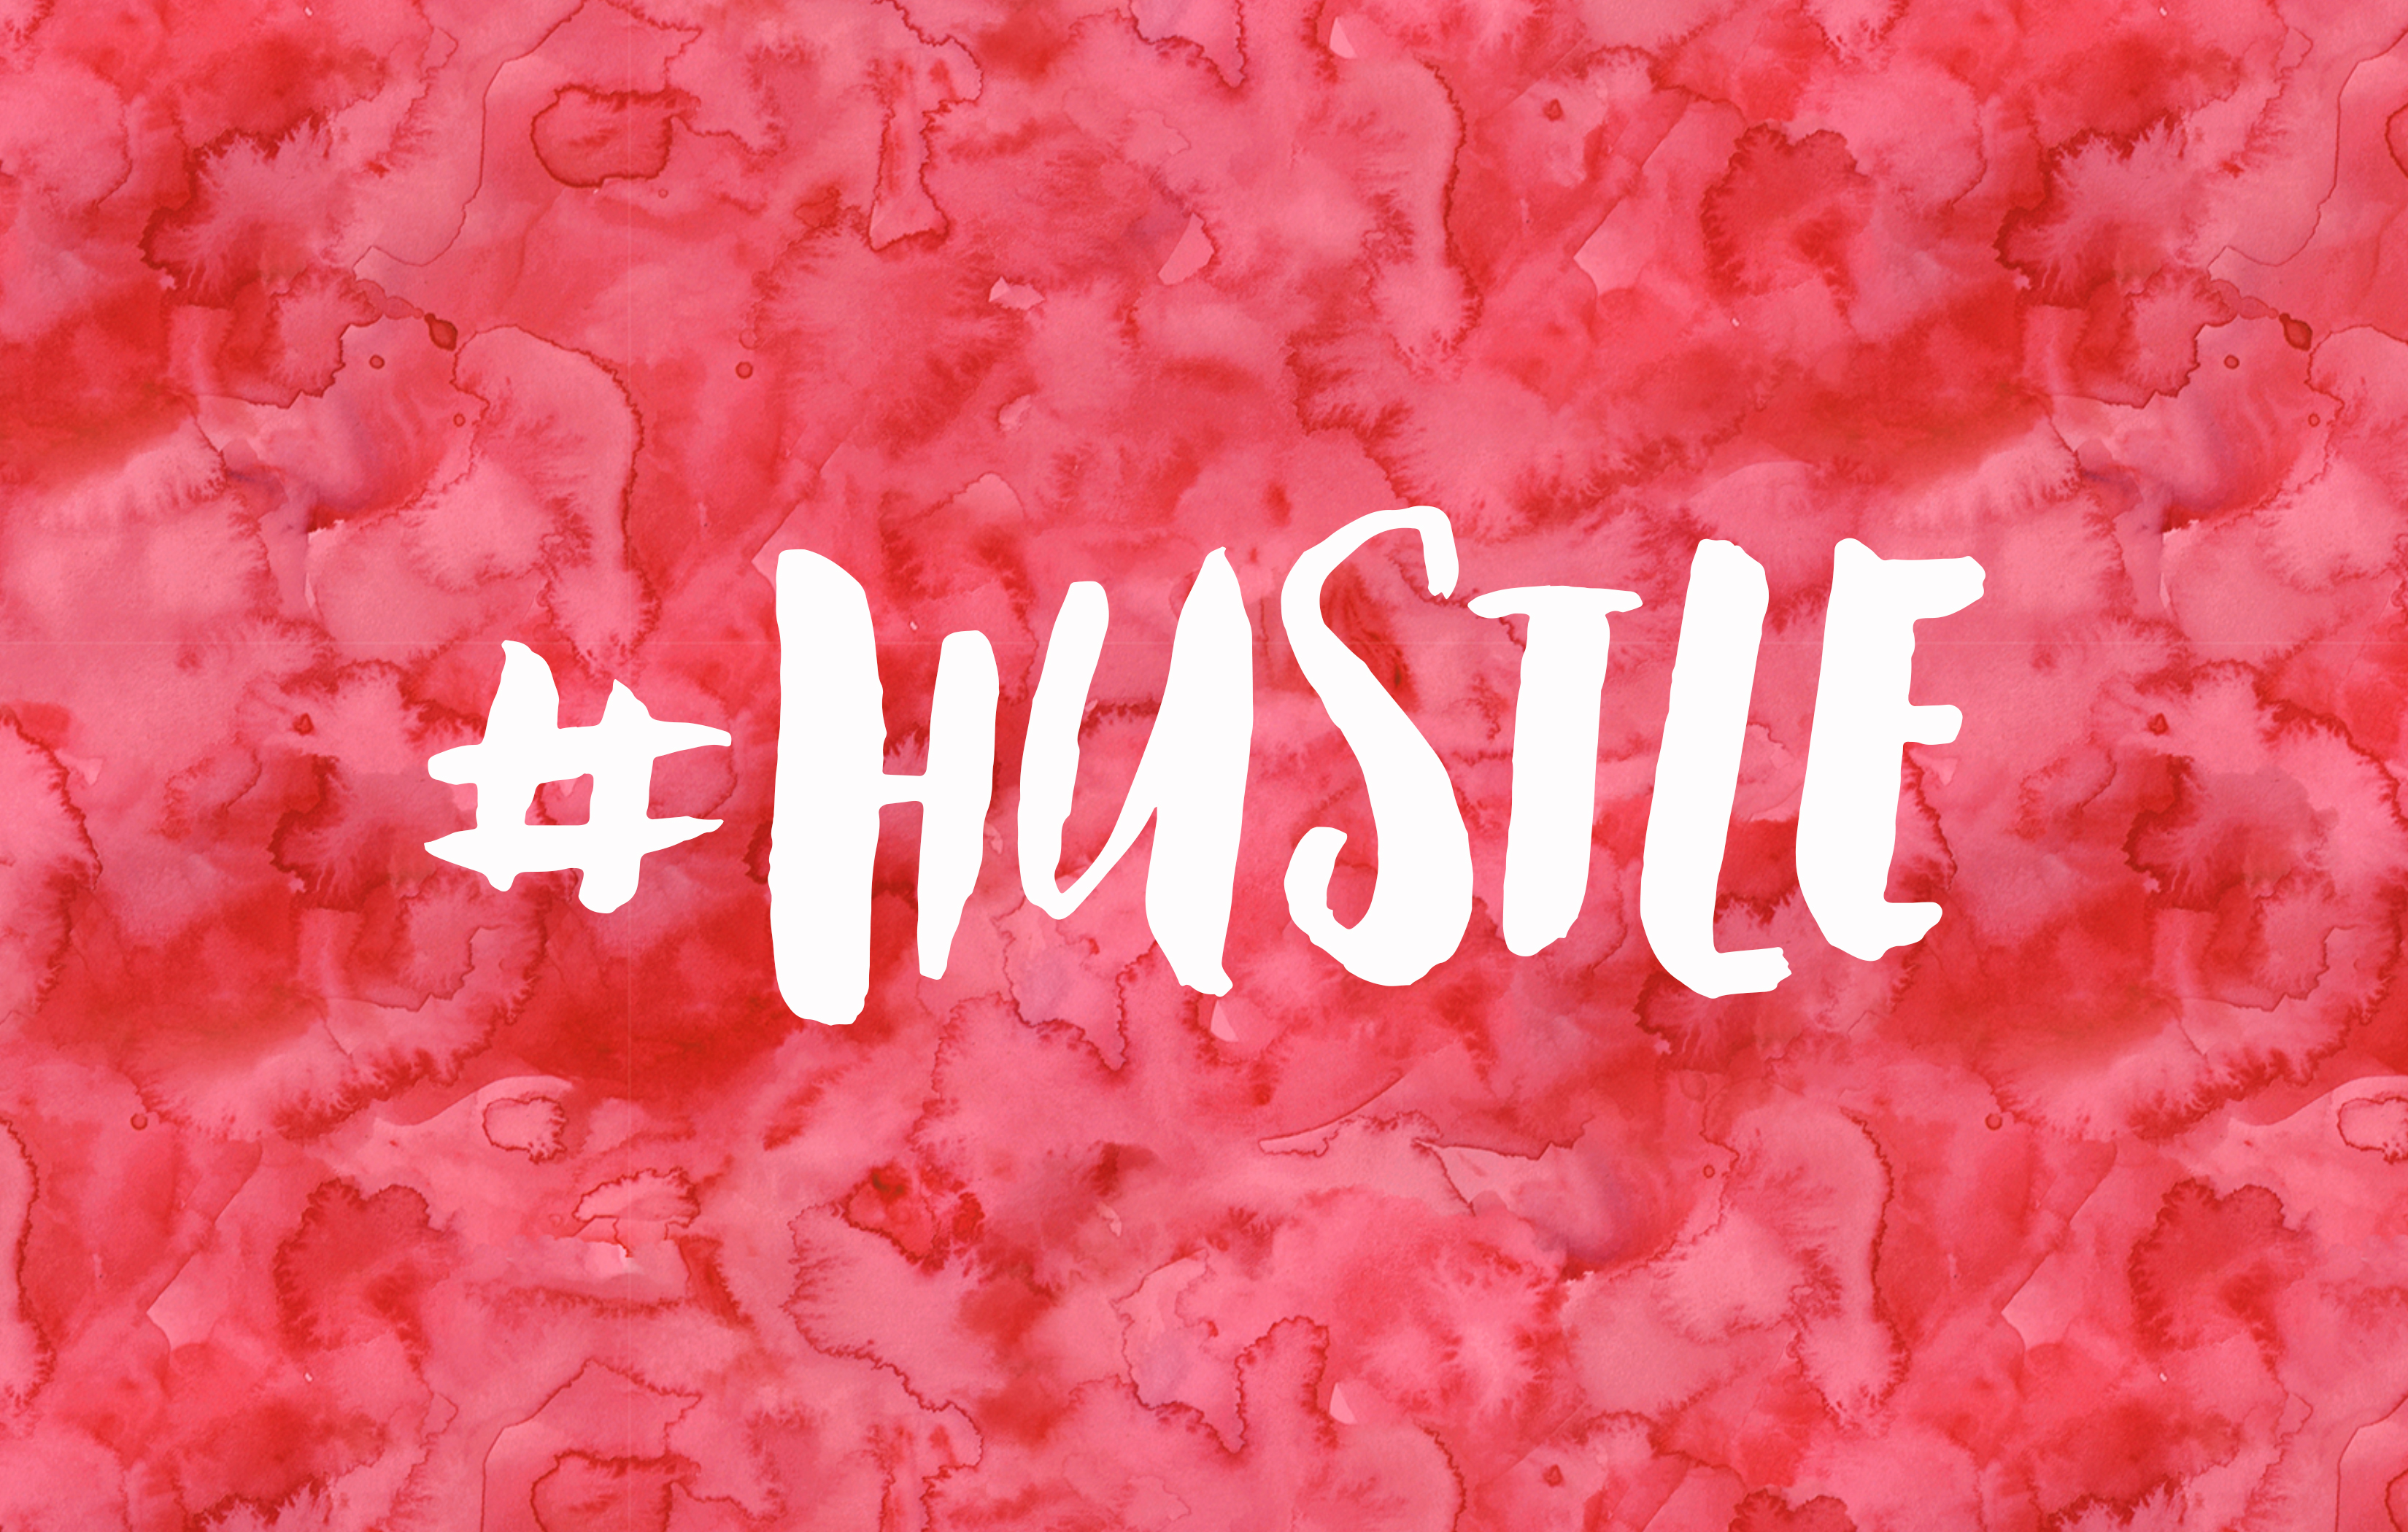 Girl Boss Wallpaper Hd Etsy Shop Official Launch For The Girl Who Hustles Gen